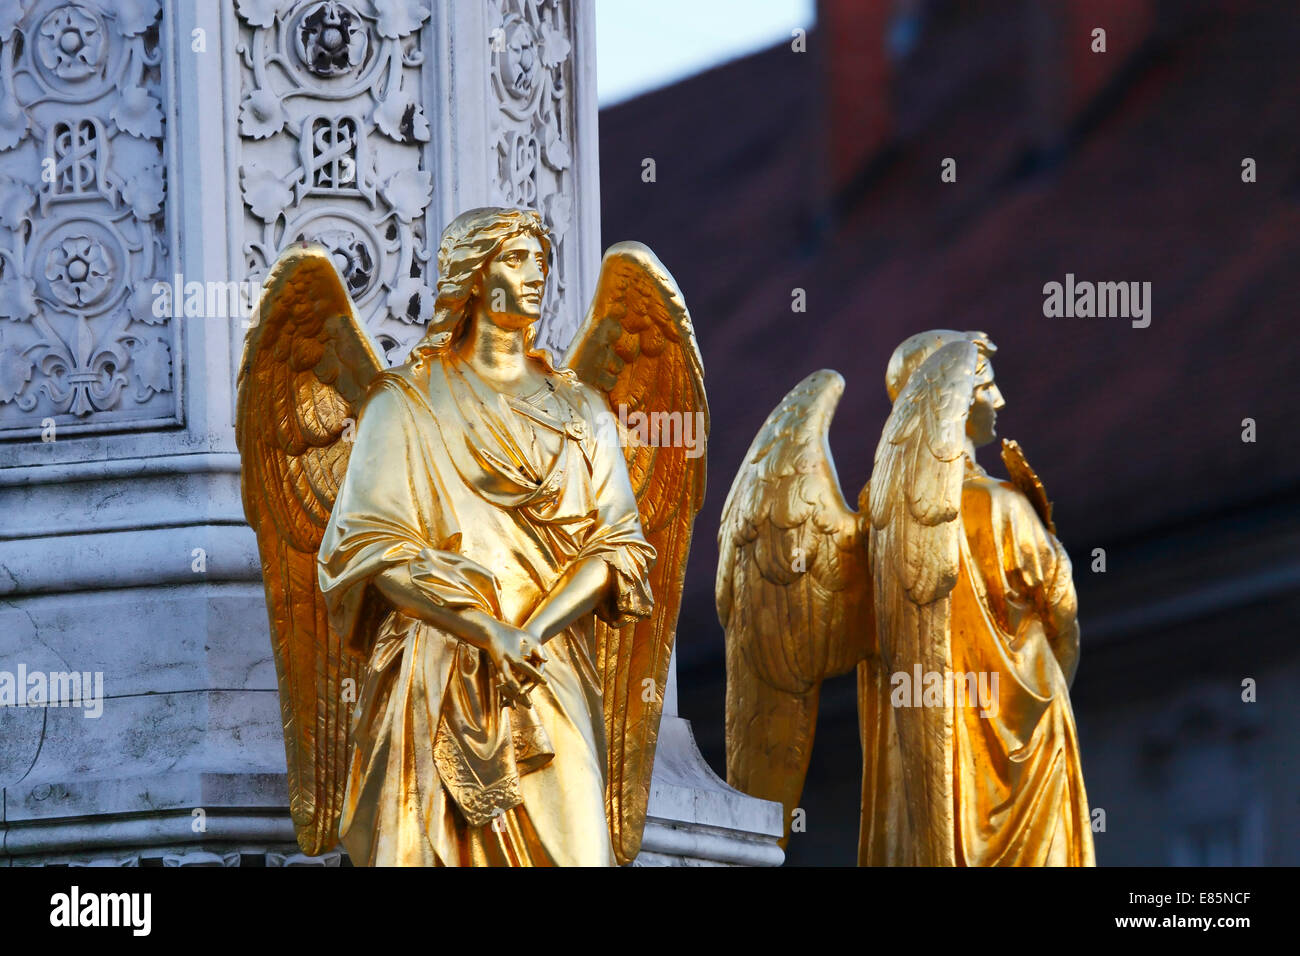 Zagreb sculpture of golden angels in front of cathedral - Stock Image